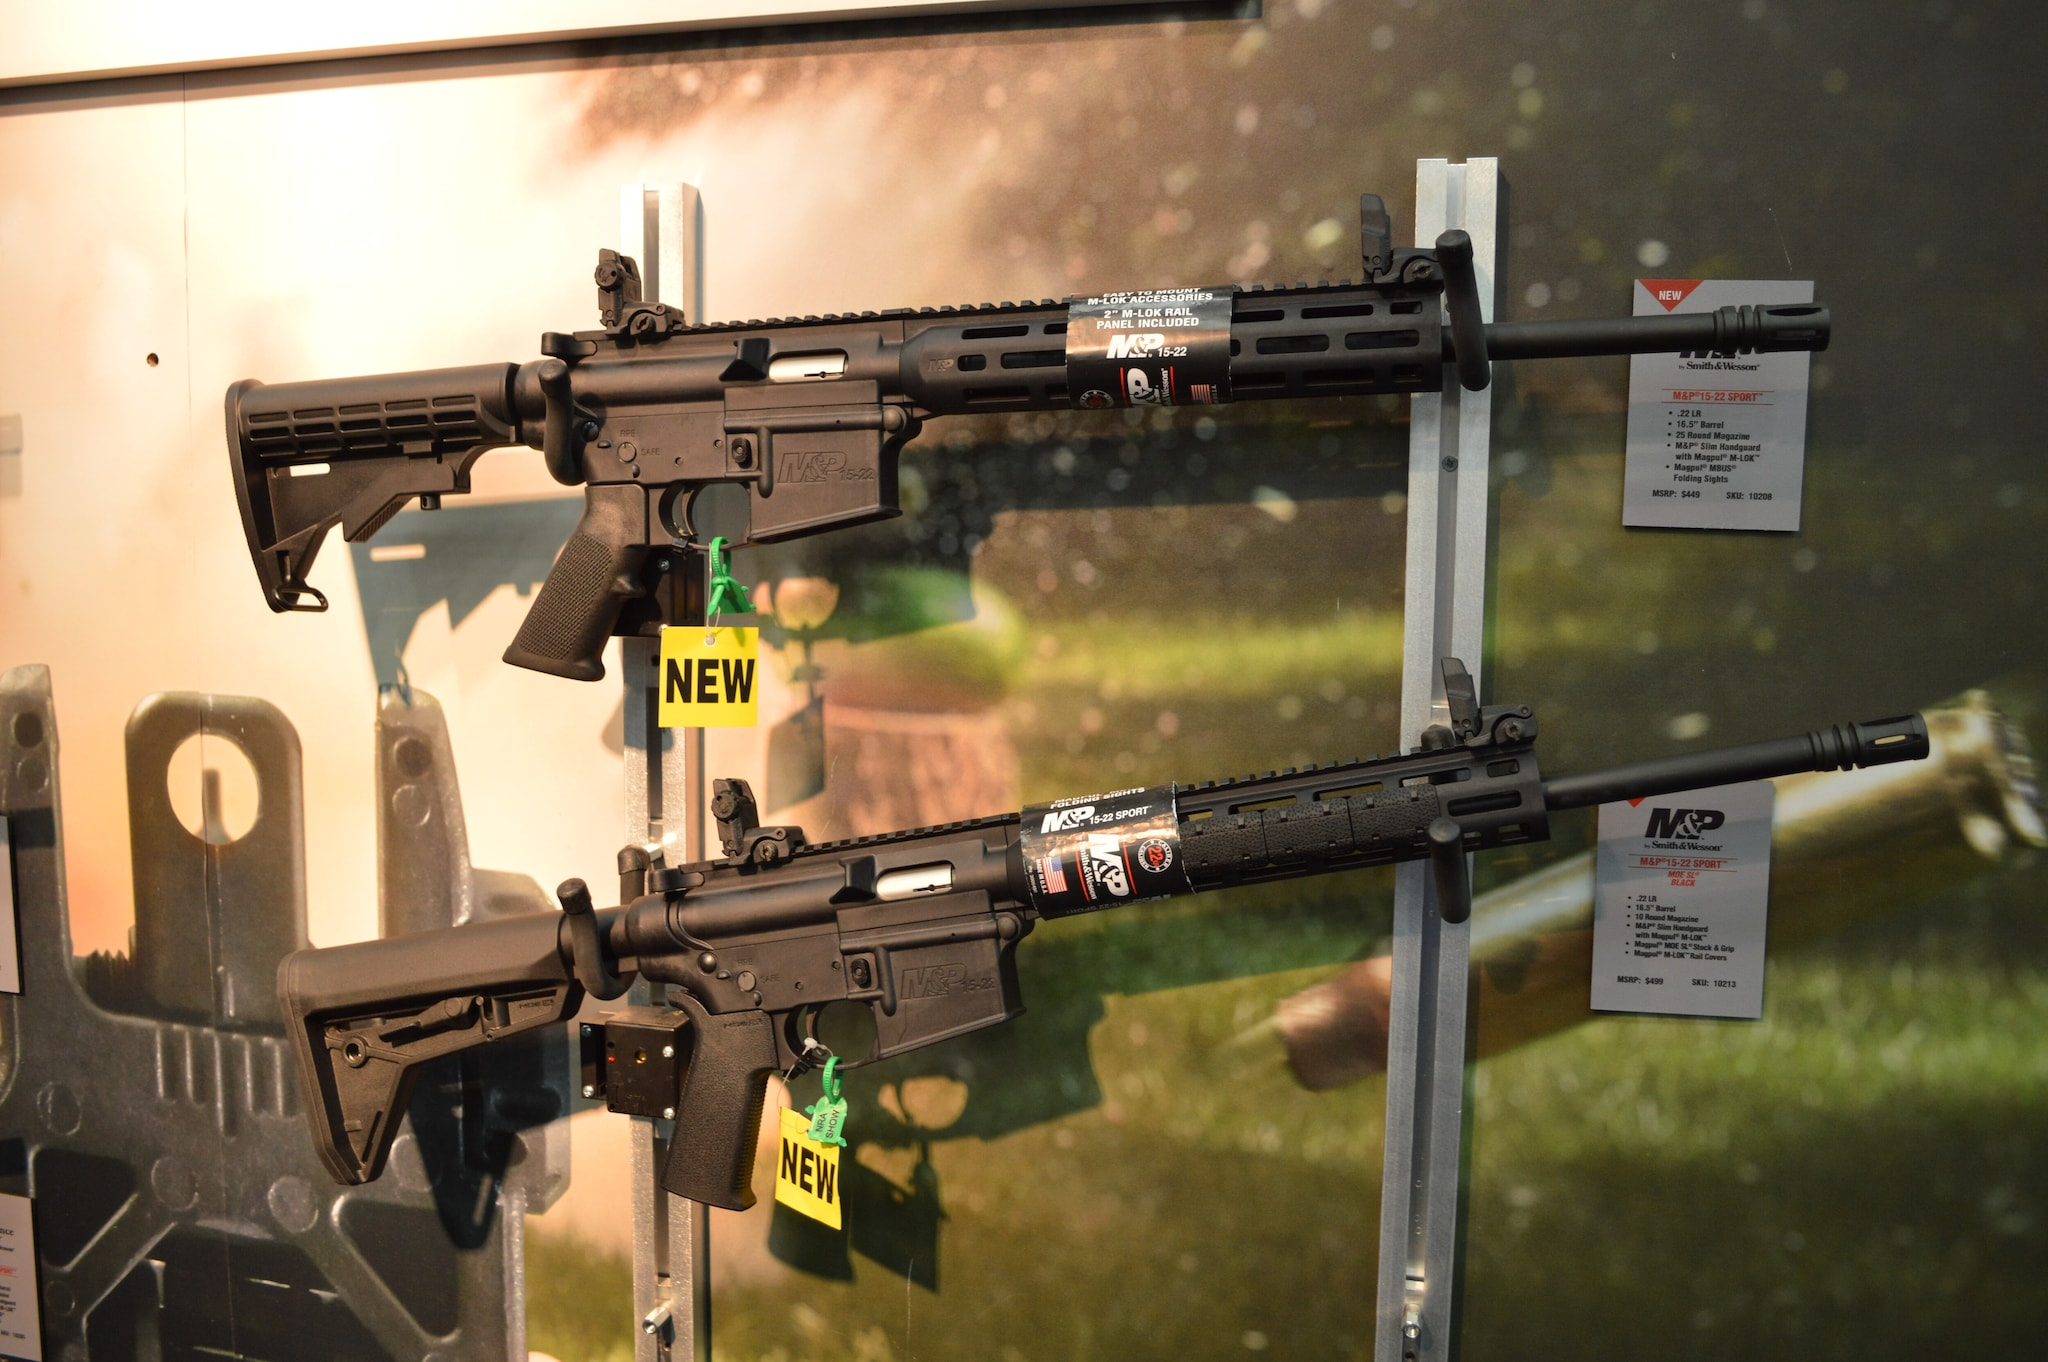 Smith & Wesson showed off the results of their partnership with Magpul. The M&P 15-22 AR-style rimfire rifle line has been dressed up. Top, an M&P slim handguard with Magpul M-Lok and MBUS backup sights. The lower MOE SL model wears the same handguard but also Magpul MOE SL stock & grip and Magpul M-LOK rail covers. Retail set at $449 and $499 respectively. (Photo: Kristin Alberts/Guns.com)